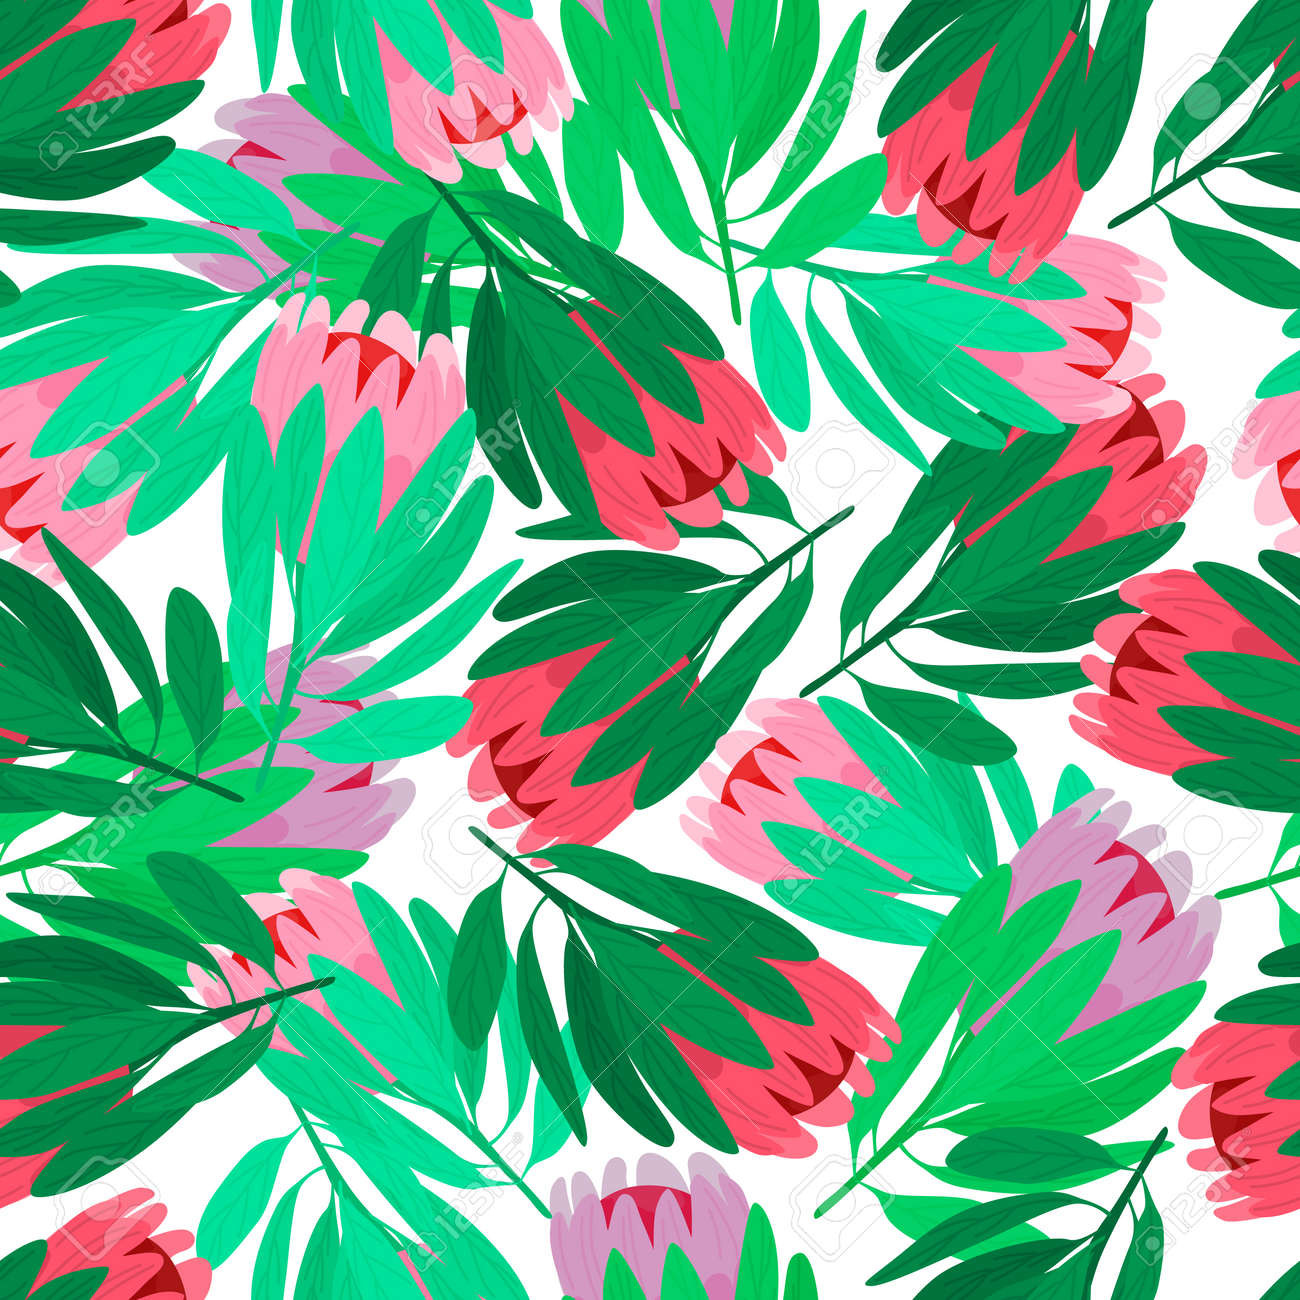 Nature seamless pattern with red and pink protea flowers elements. Isolated backdrop. Green leaves. Designed for fabric design, textile print, wrapping, cover. Vector illustration. - 169017090